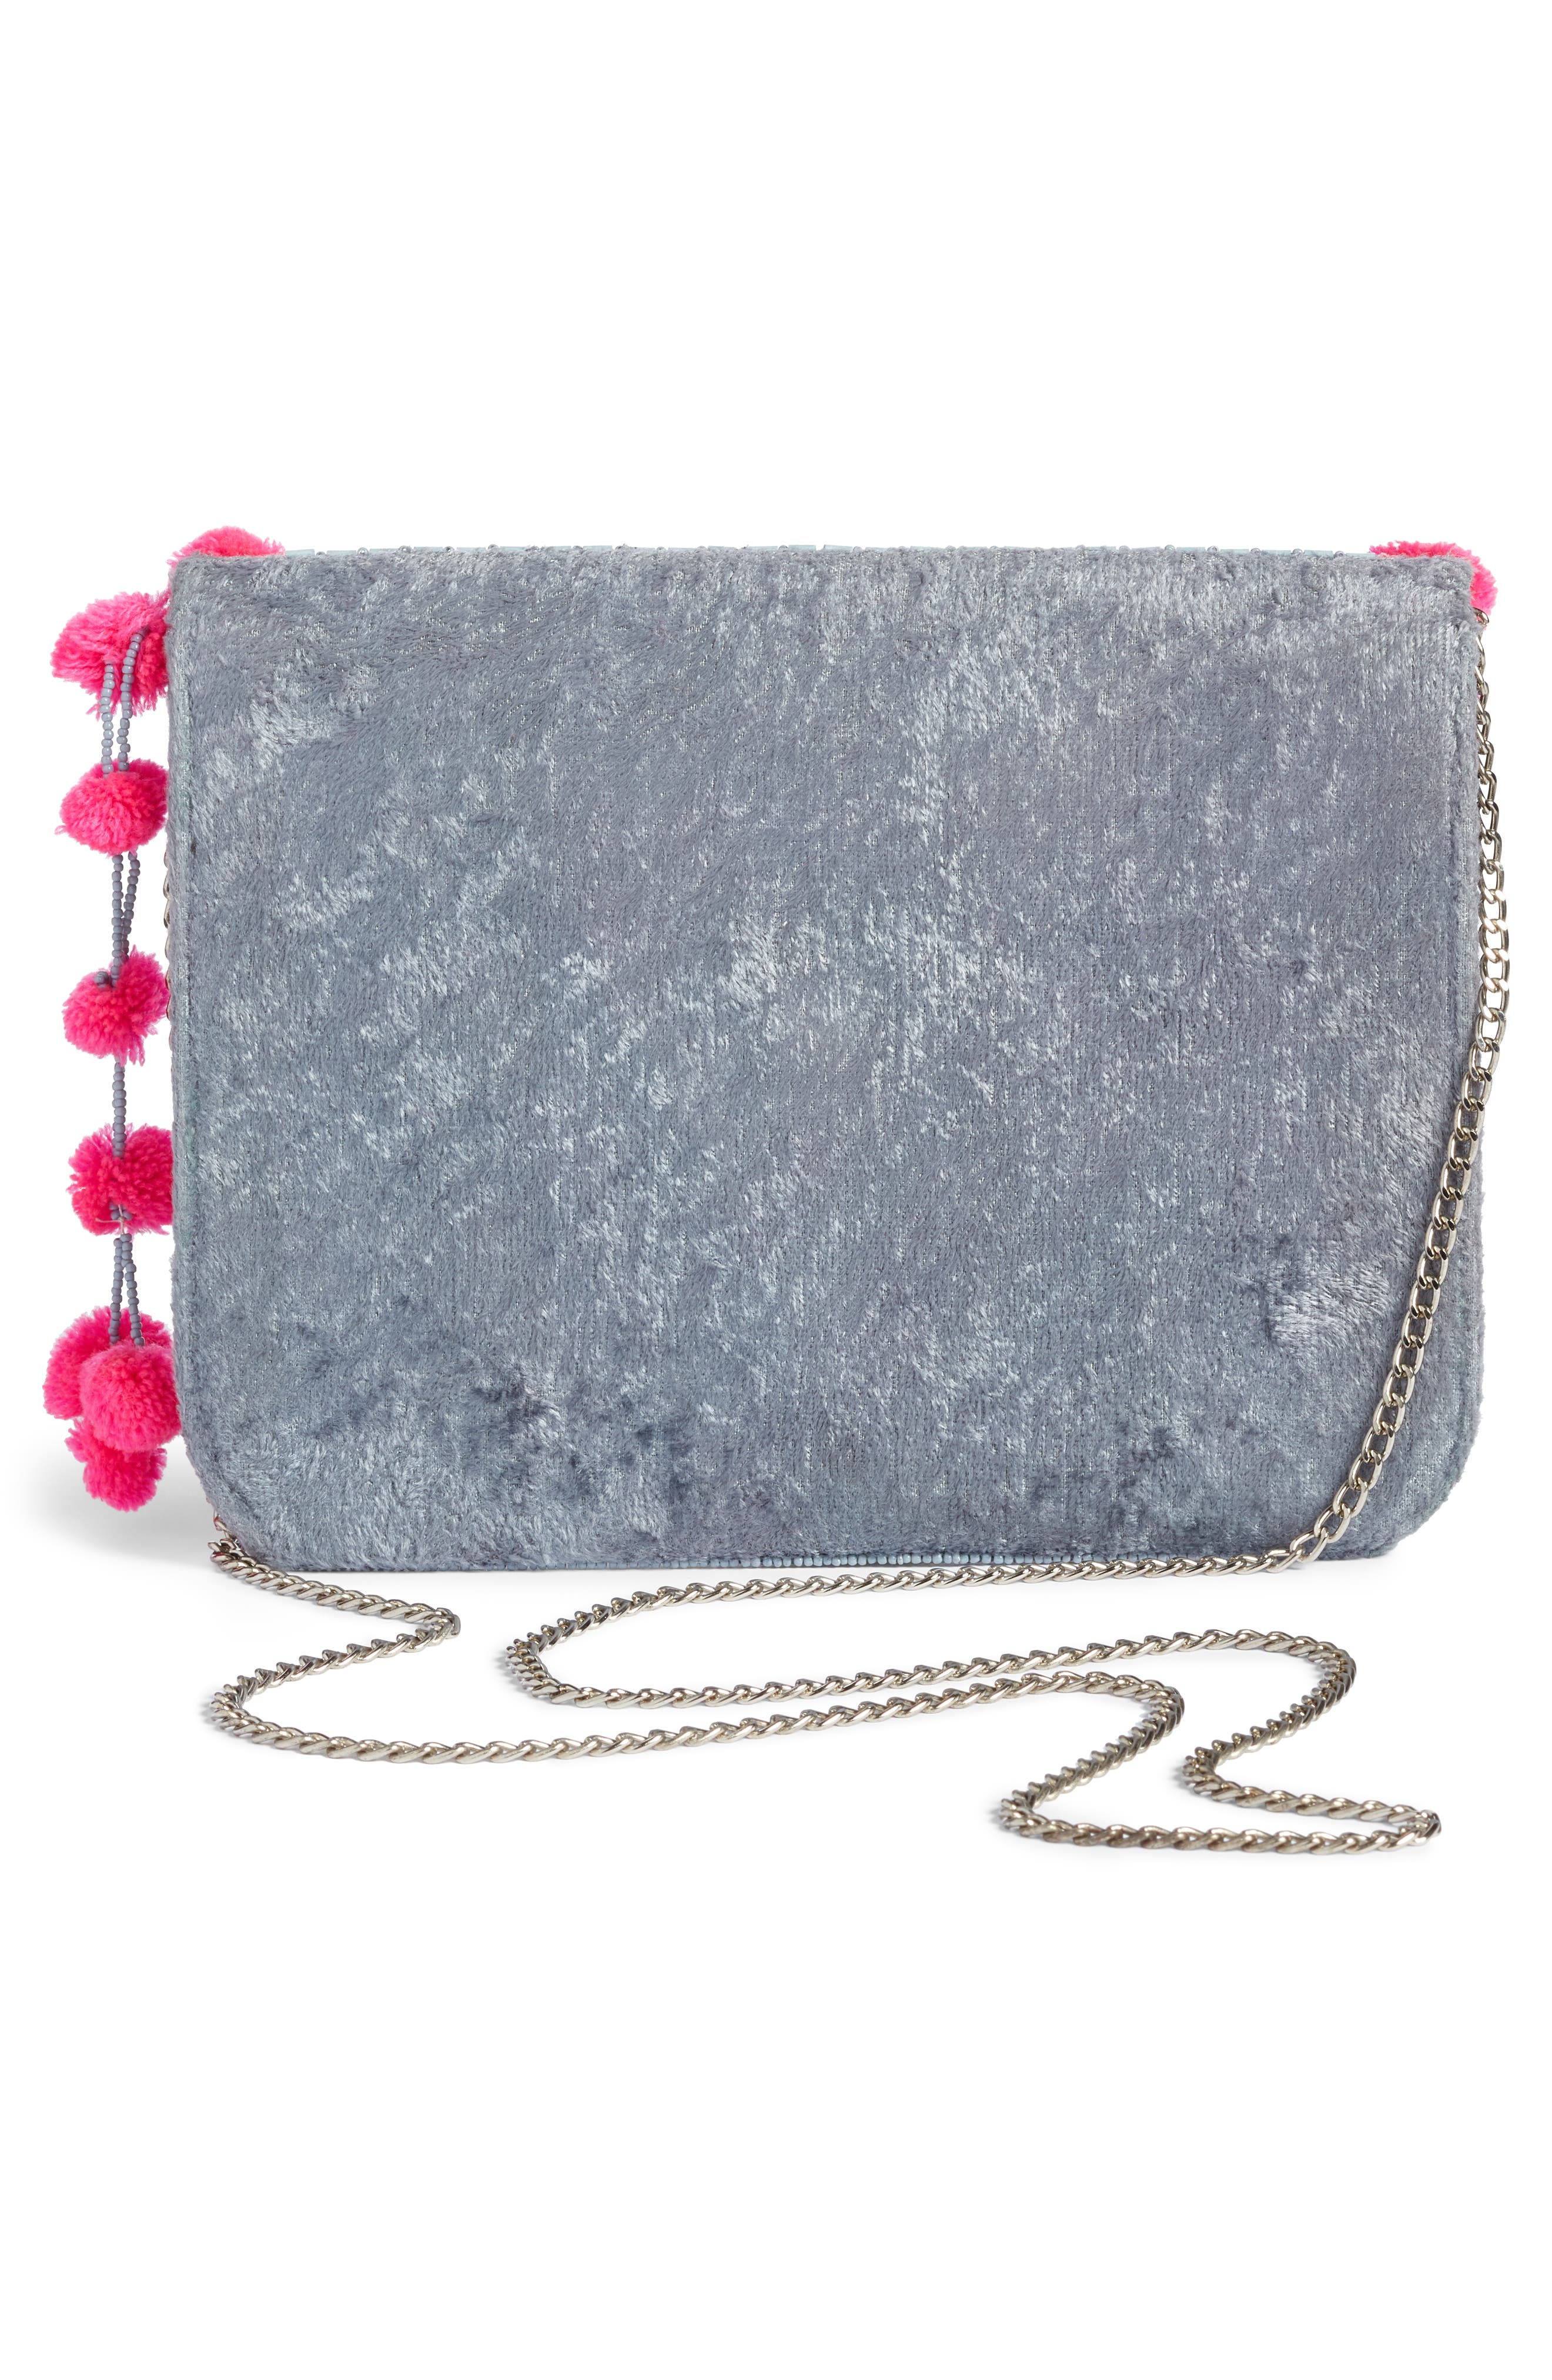 Mariah Beaded Clutch,                             Alternate thumbnail 3, color,                             BLUE/ PINK